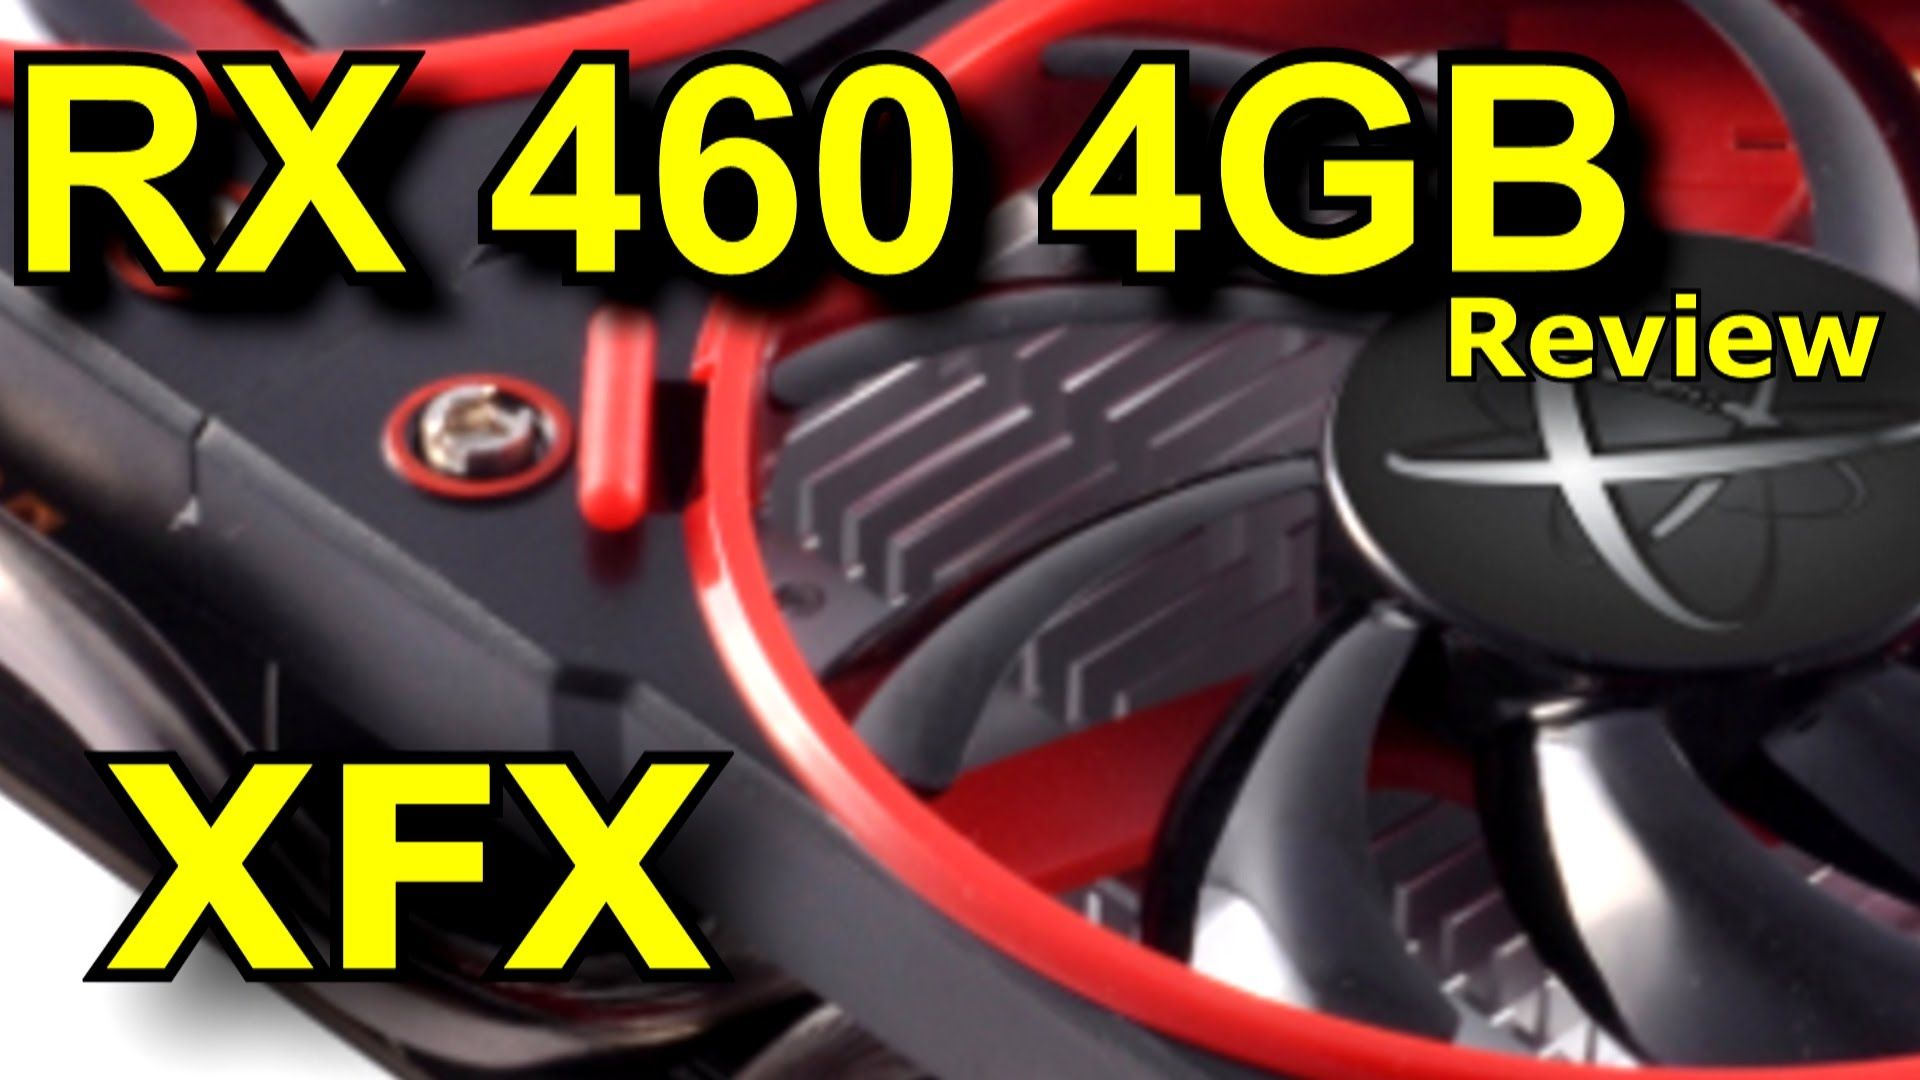 The XFX RX 460 4GB Review Advancing the Entry Level